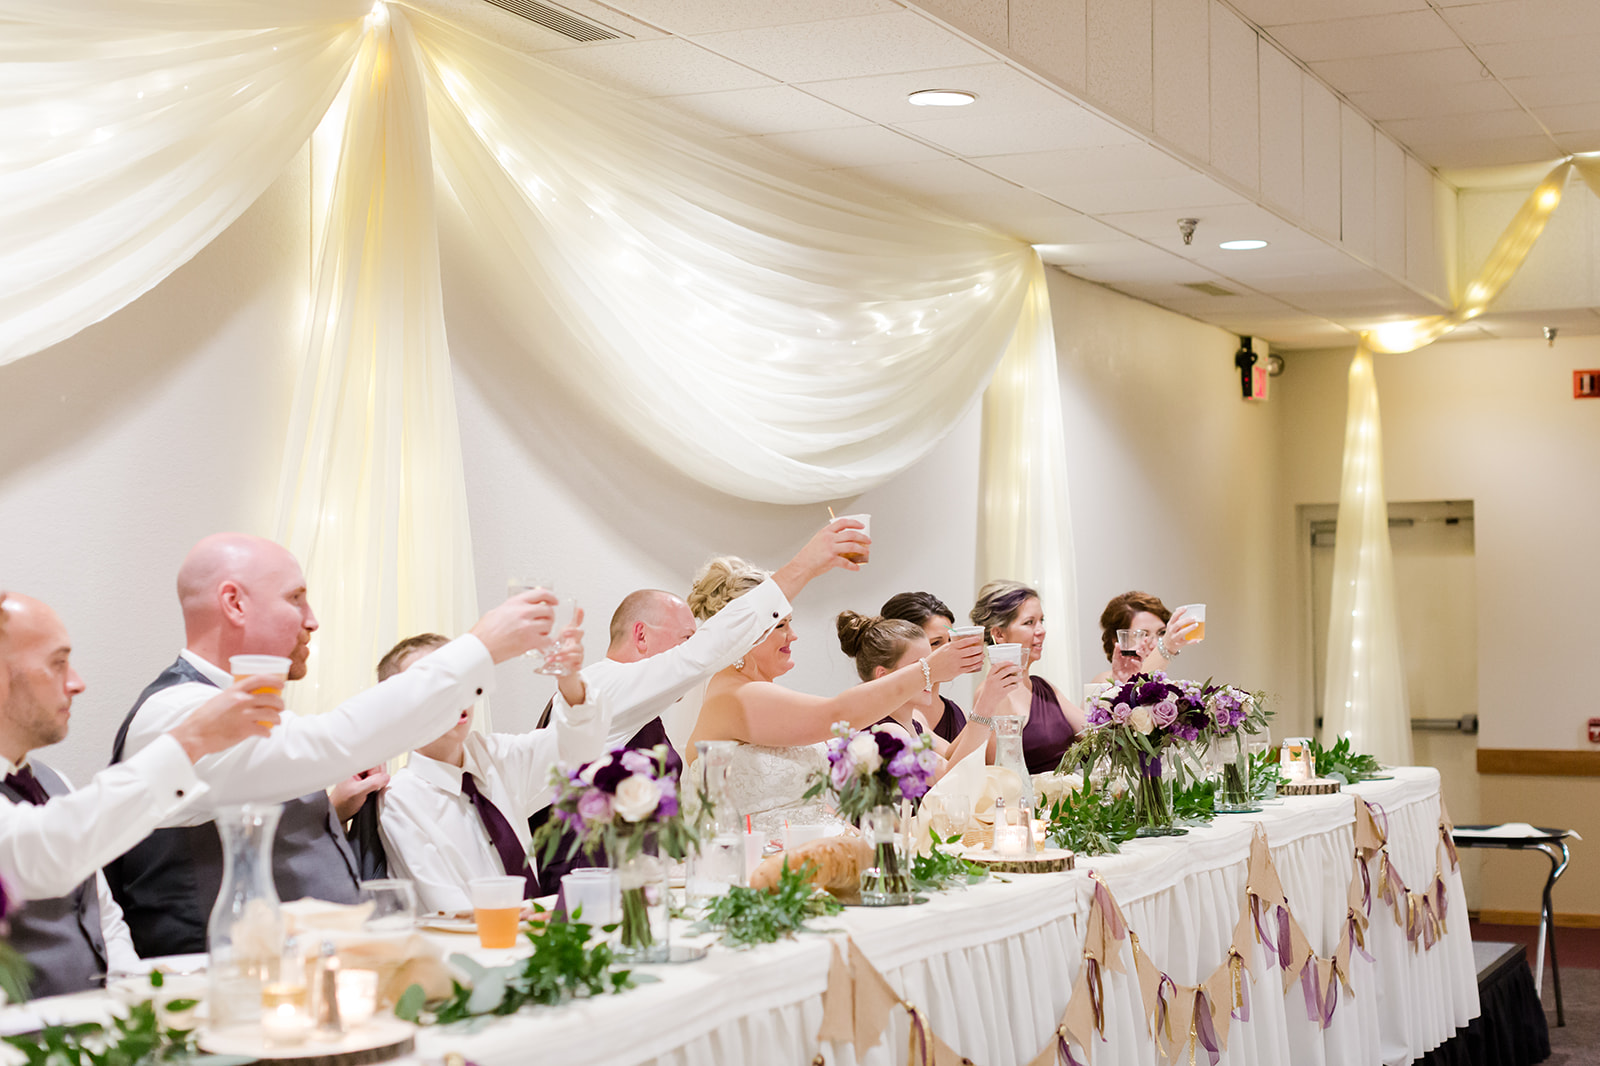 Lindsey White Photography | Cheers at the head table with white table skirting and ceiling draping as the backdrop | wedding venue in Minnesota ballroom